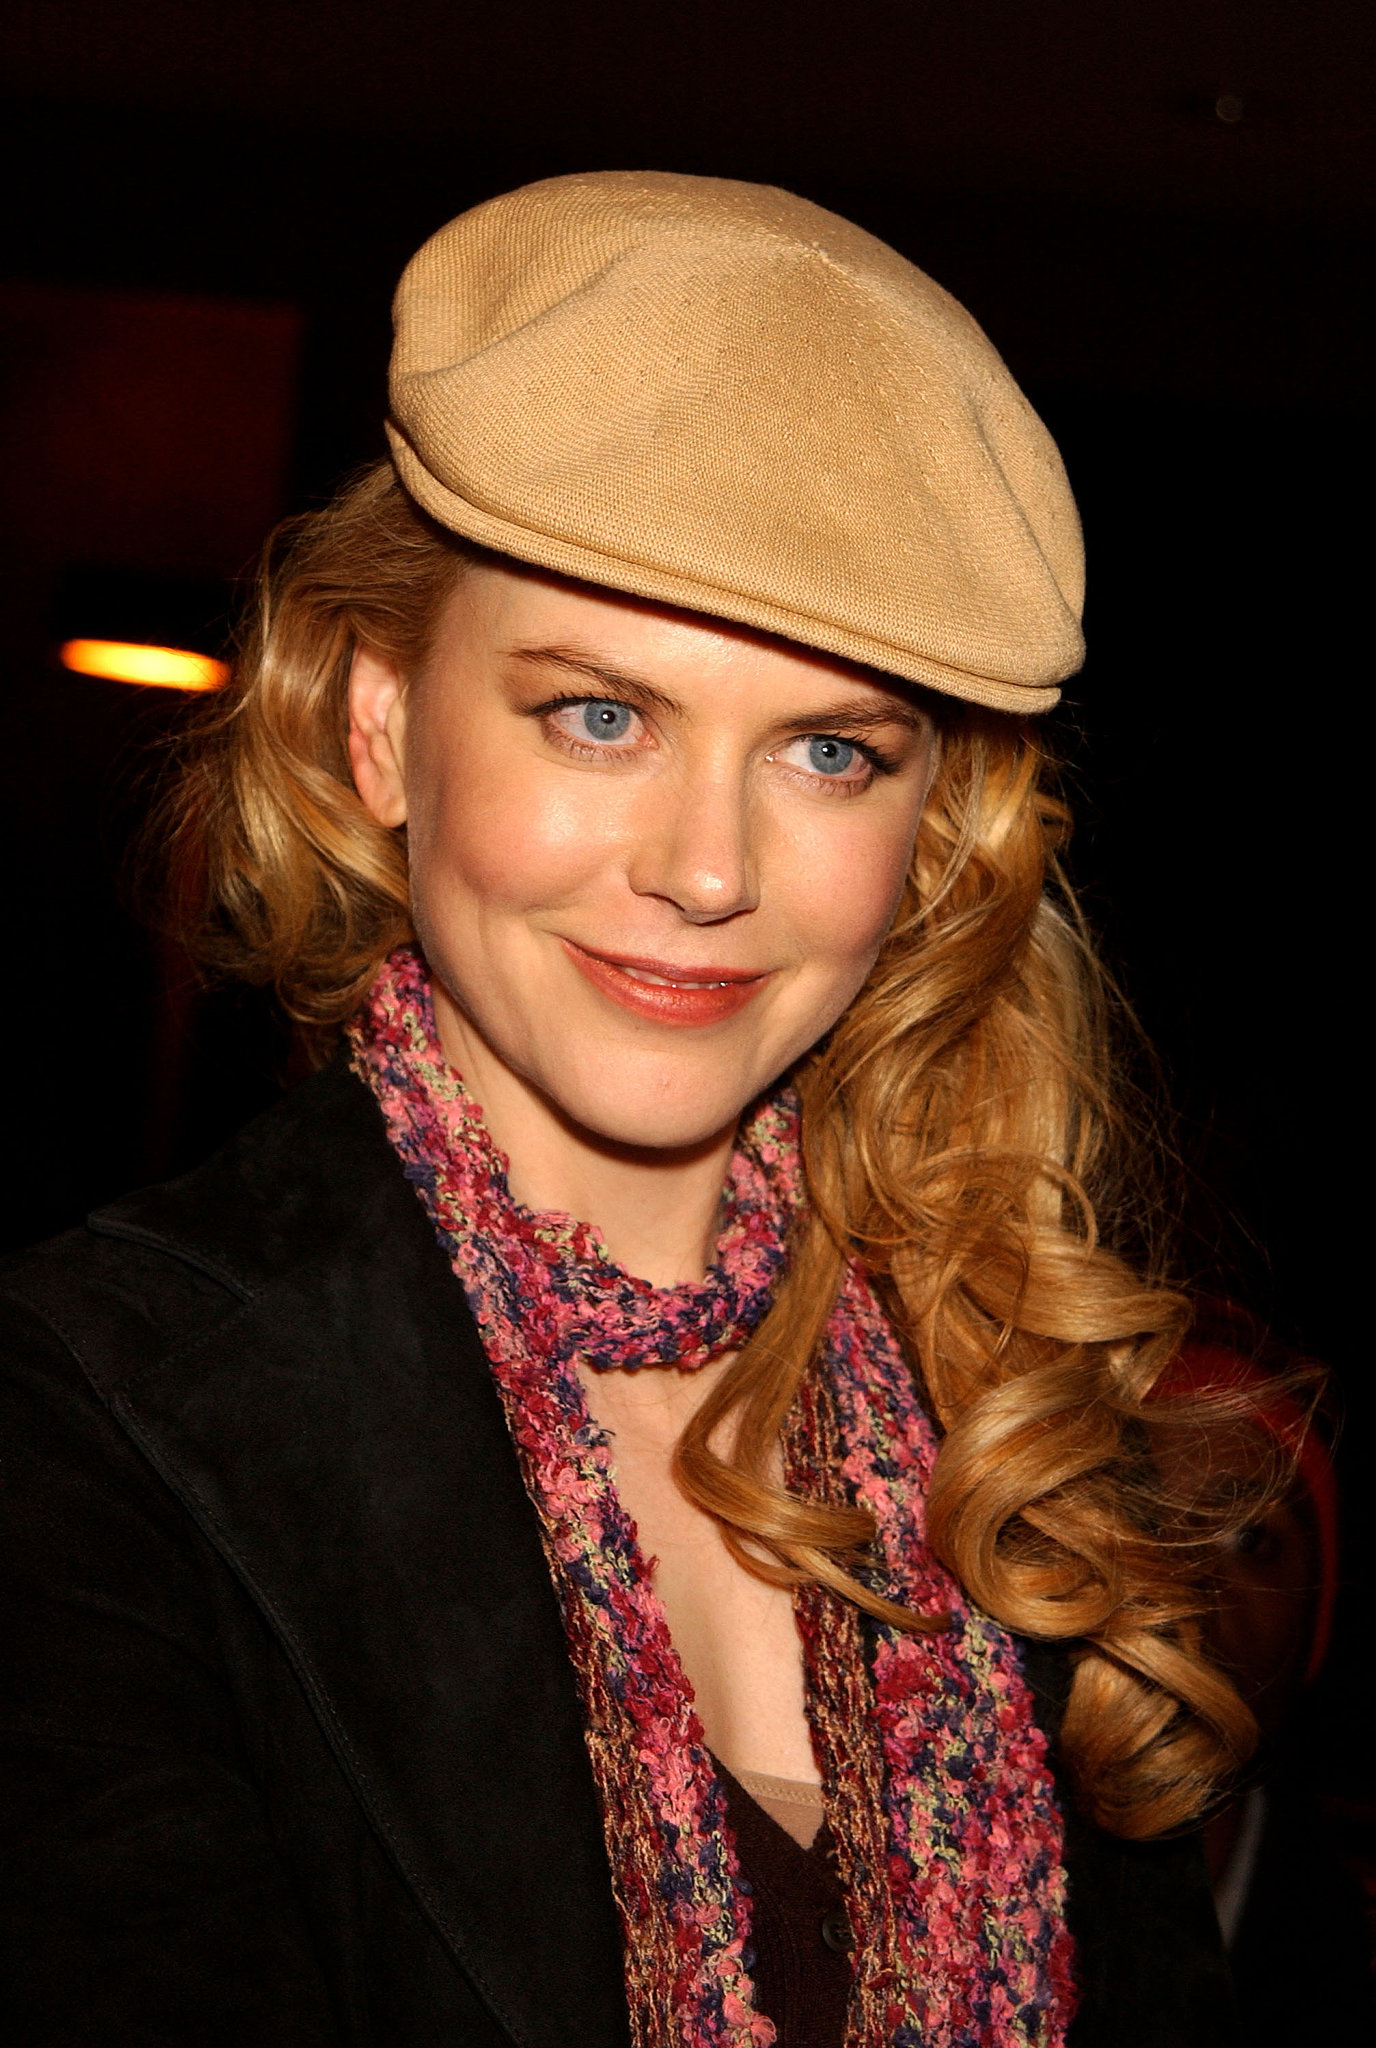 Nicole Kidman smiled at her Birthday Girl premiere at Sundance in 2002.